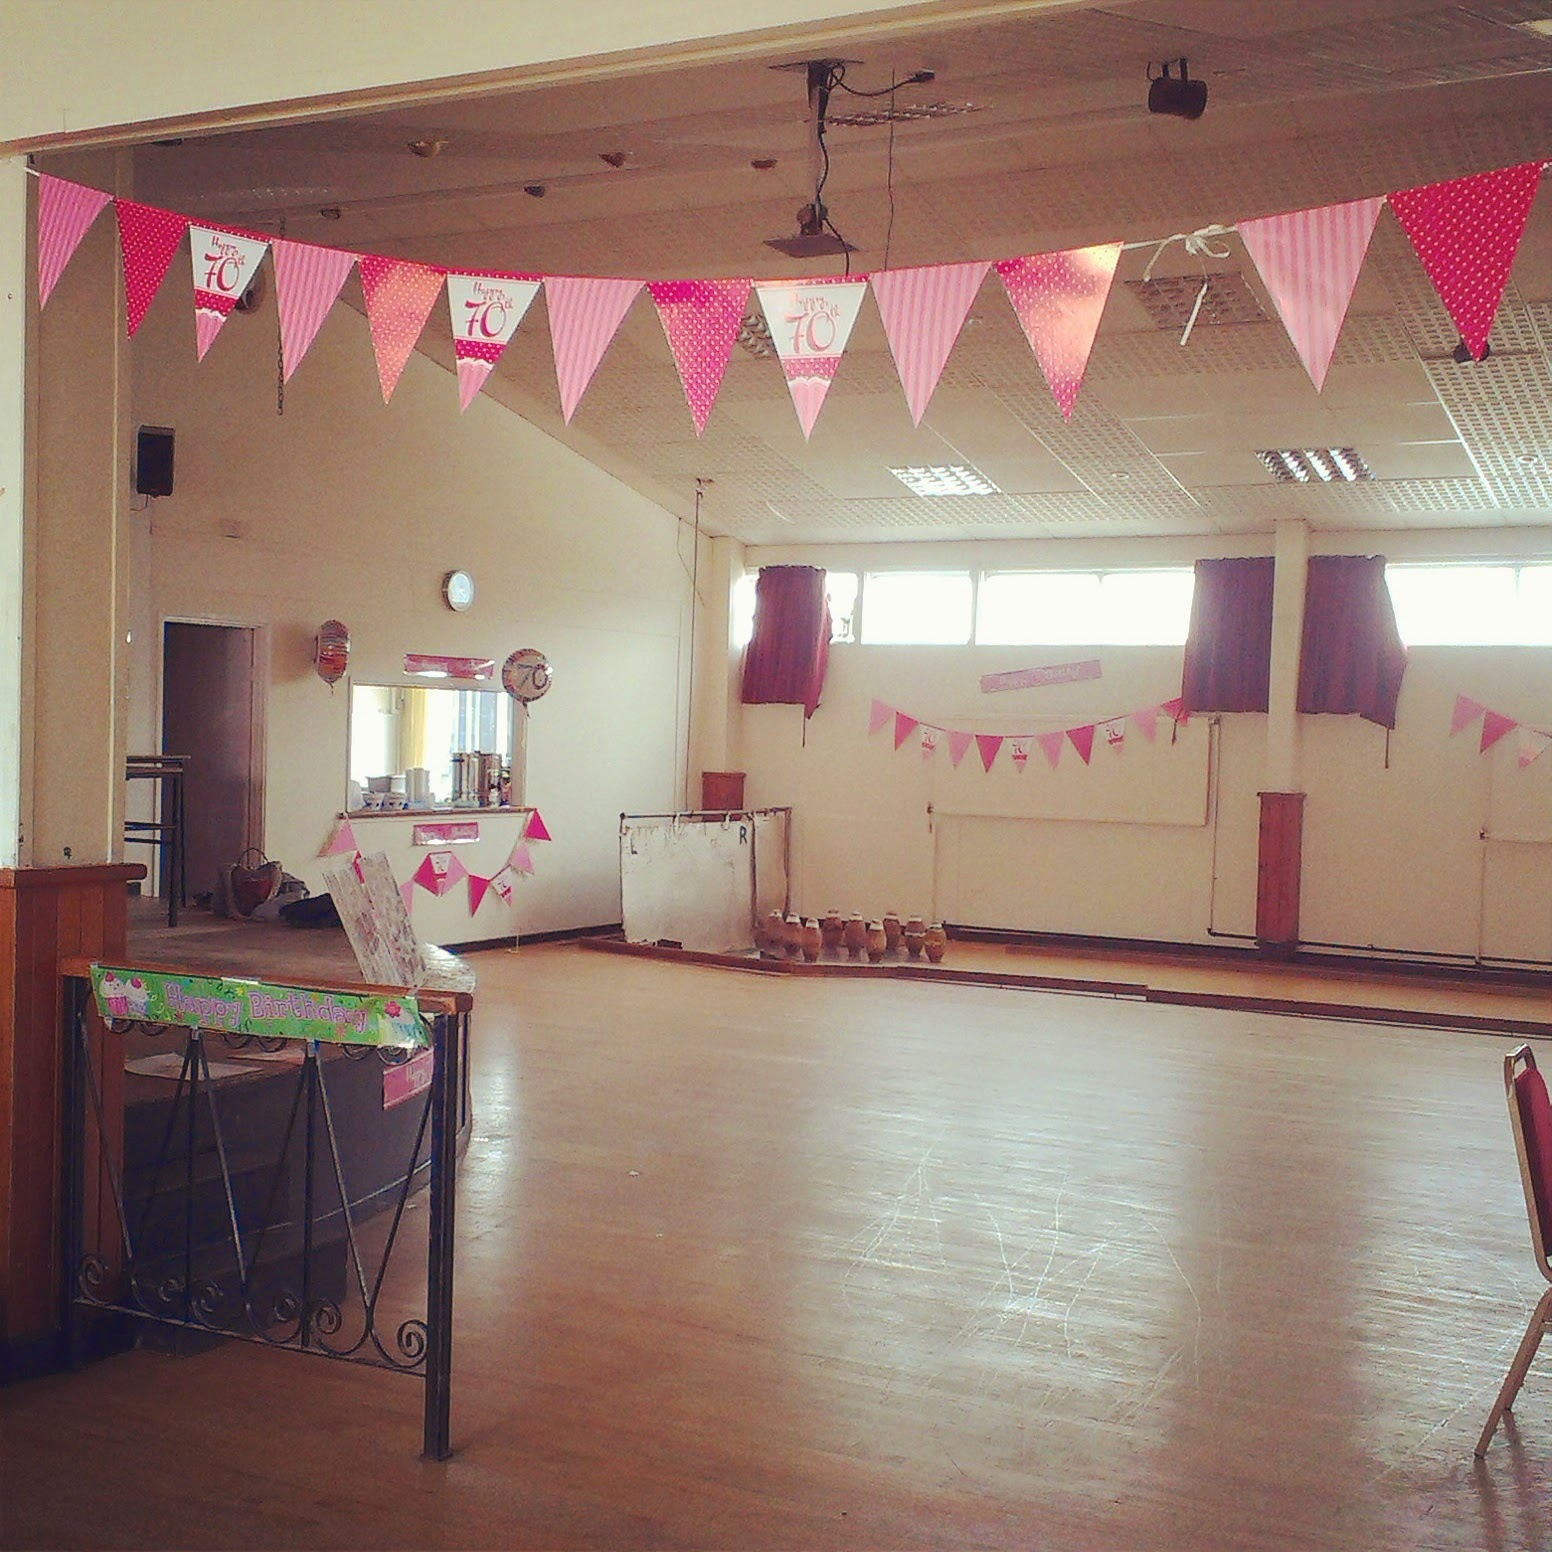 Hall decorated for 70th birthday party